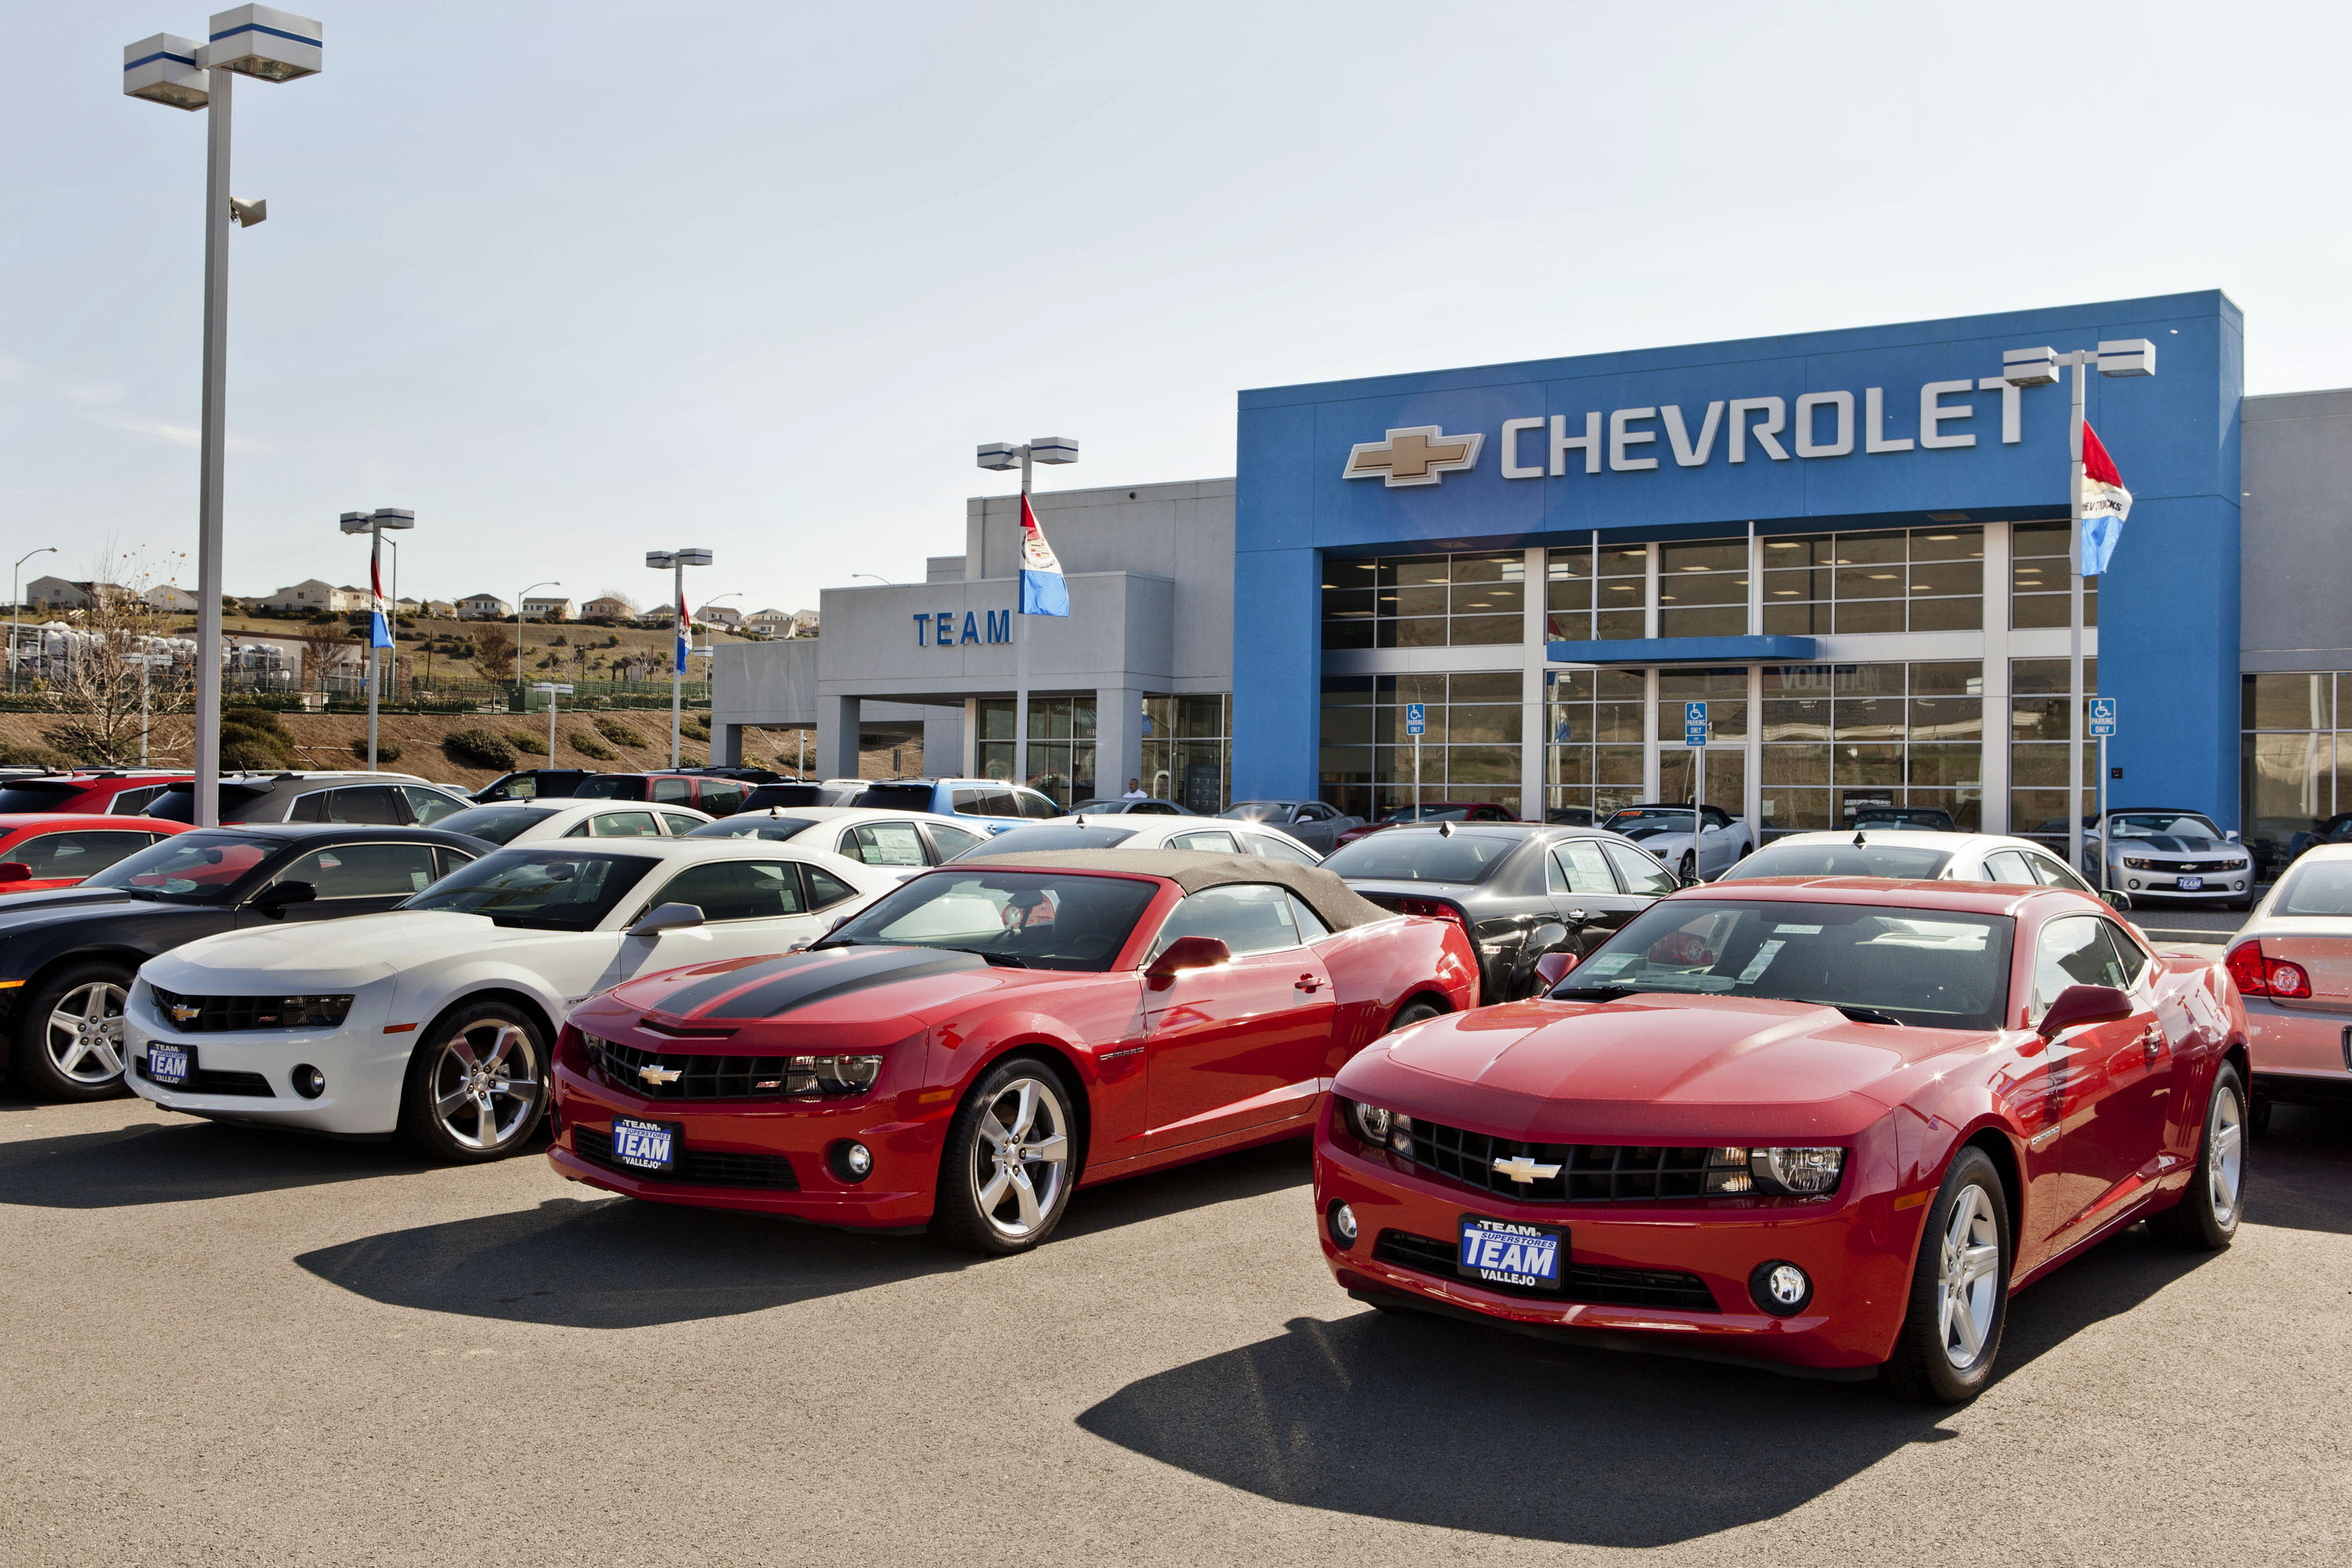 Chevrolet, Buick, GMC & Cadillac Dealers Upgrading Stores - Digital Dealer